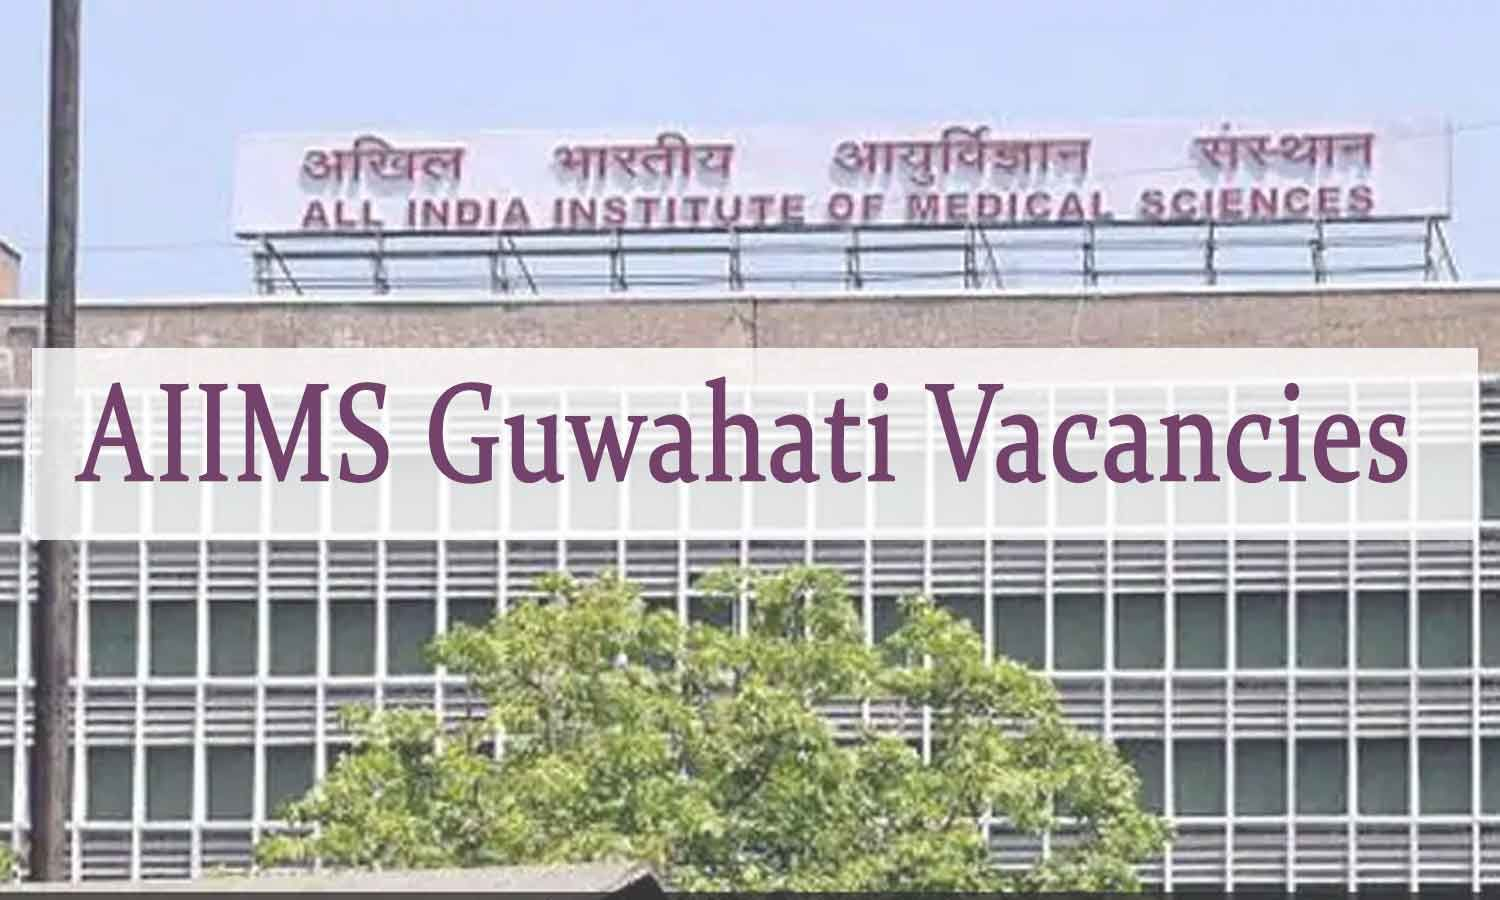 APPLY NOW: AIIMS Bhubaneswar Releases Vacancies Faculty Posts For AIIMS Guwahati In Various Departments